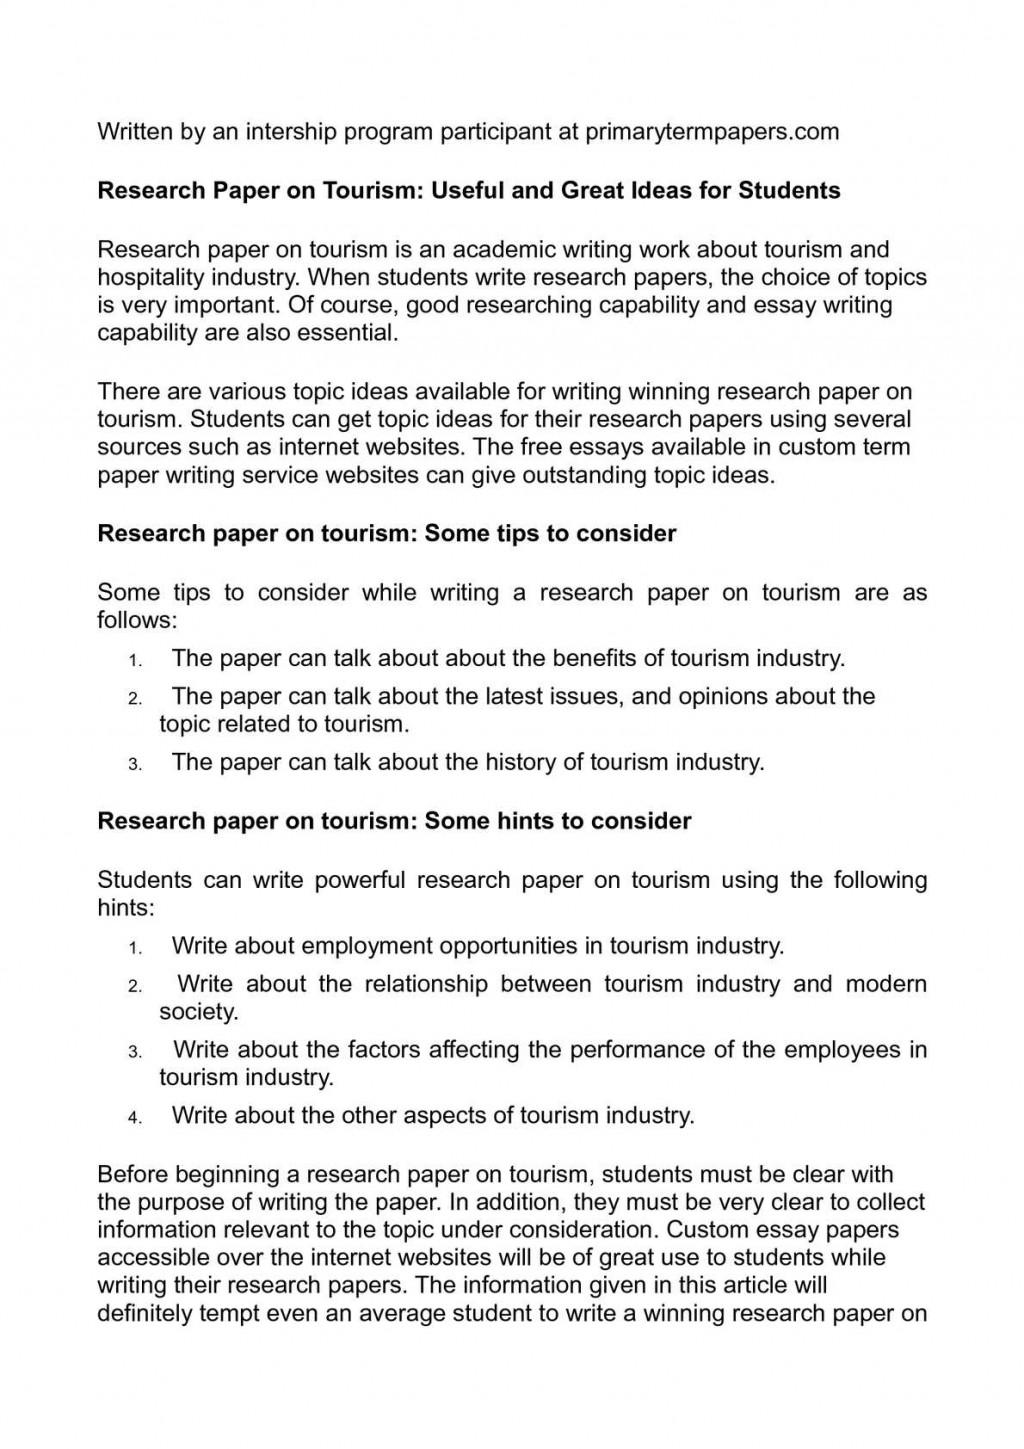 006 P1 Topics To Write Research Paper Fearsome A On Fun History Large